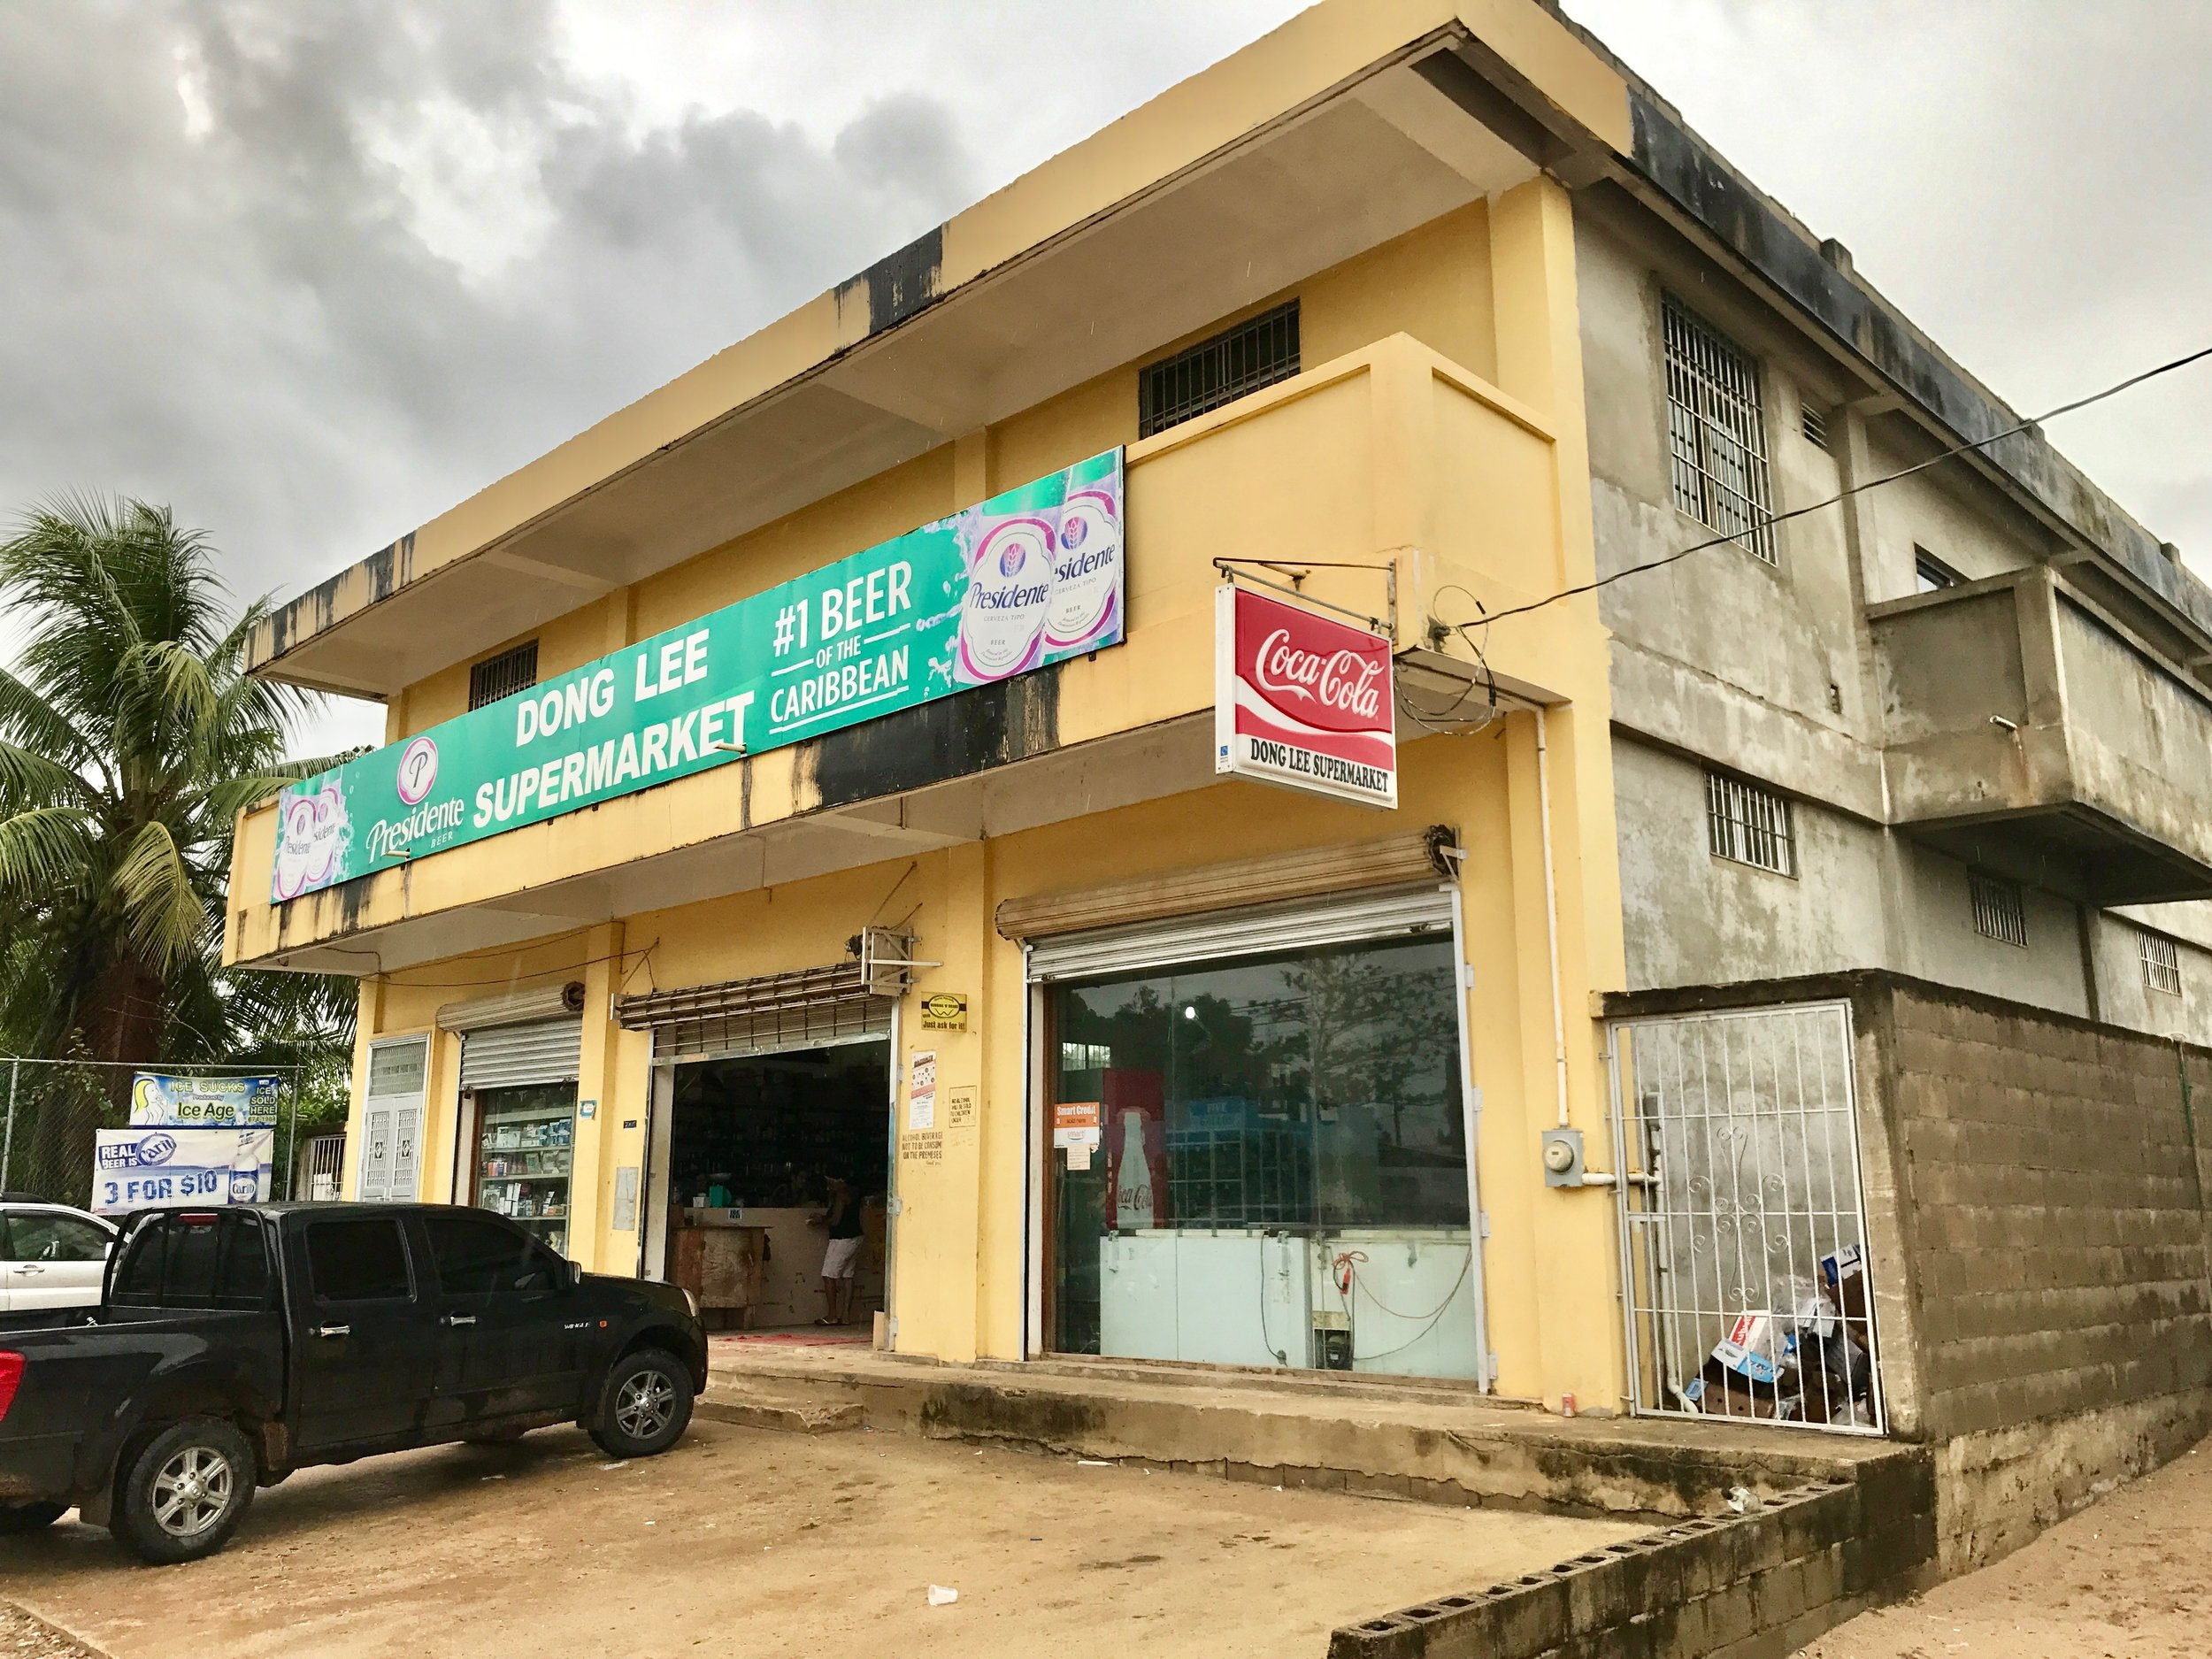 Dong Lee Supermarket, where we did much of our shopping